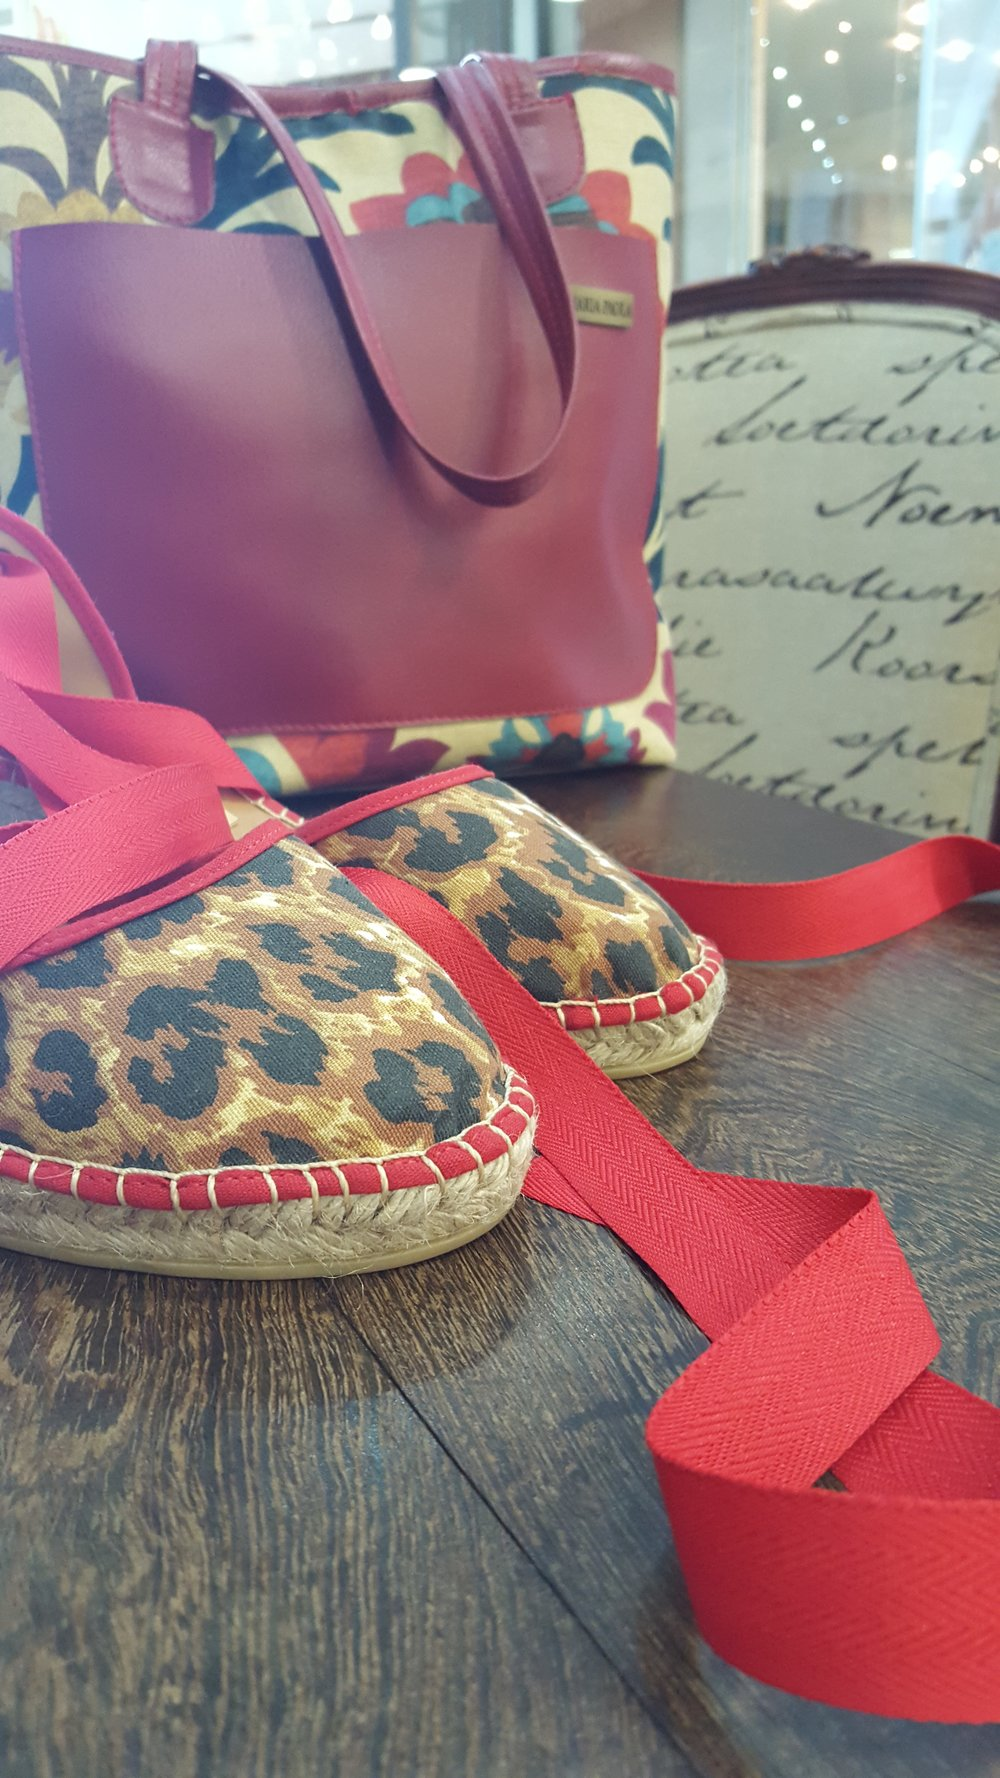 Leopard Print and Red Lace Ups and Handbag_Maria Paola.jpg